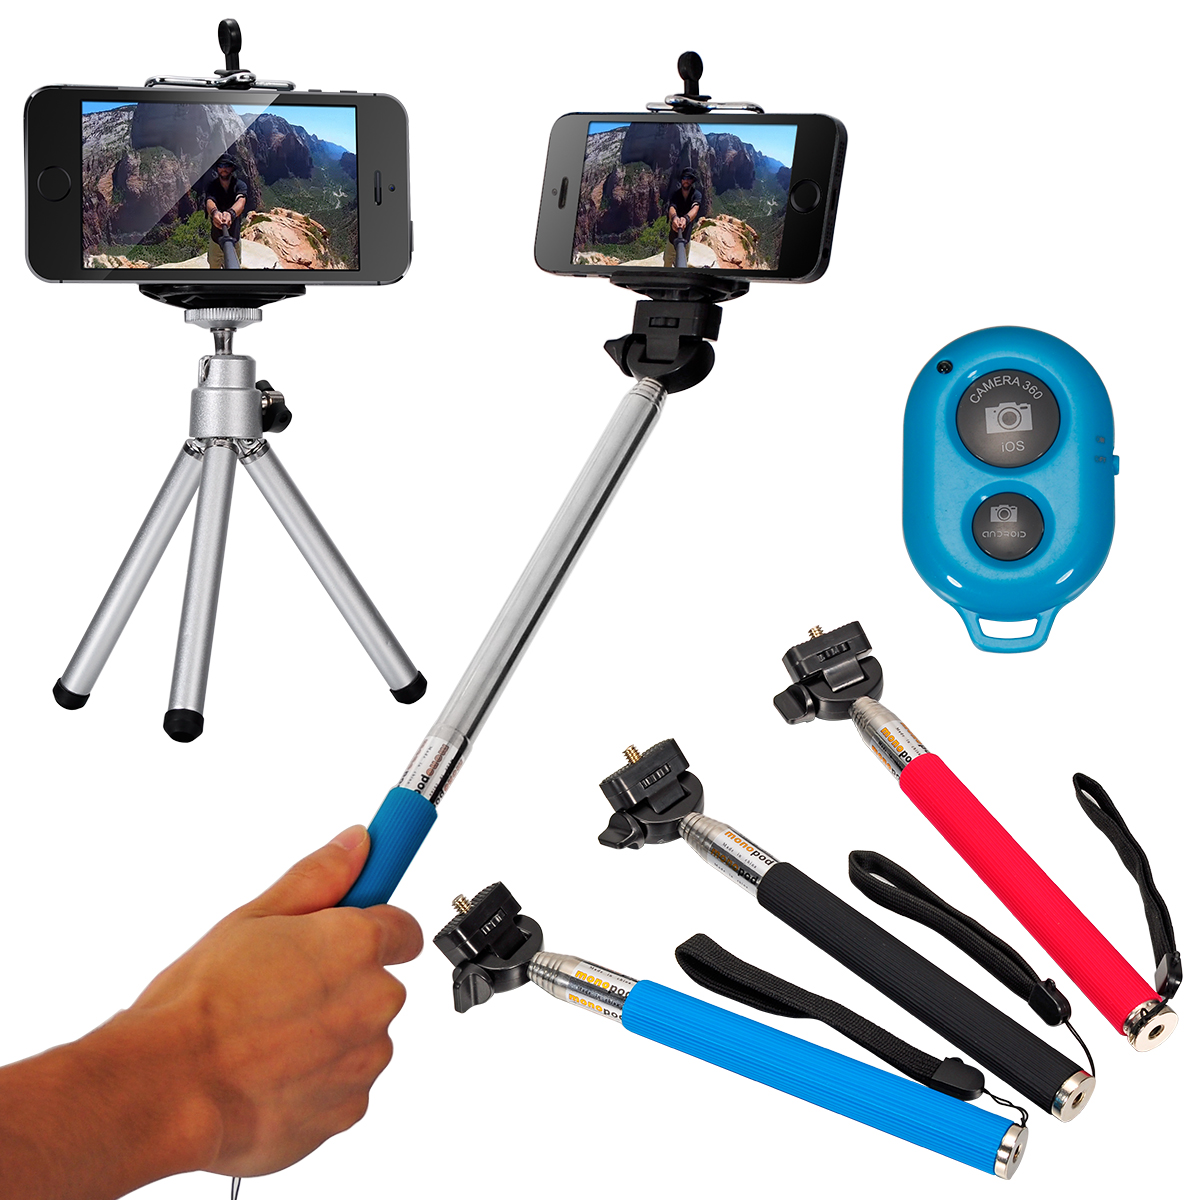 monopod selfie stick handheld tripod bluetooth for iphone 4 4s 5 5s 6 plus dc496 us15. Black Bedroom Furniture Sets. Home Design Ideas